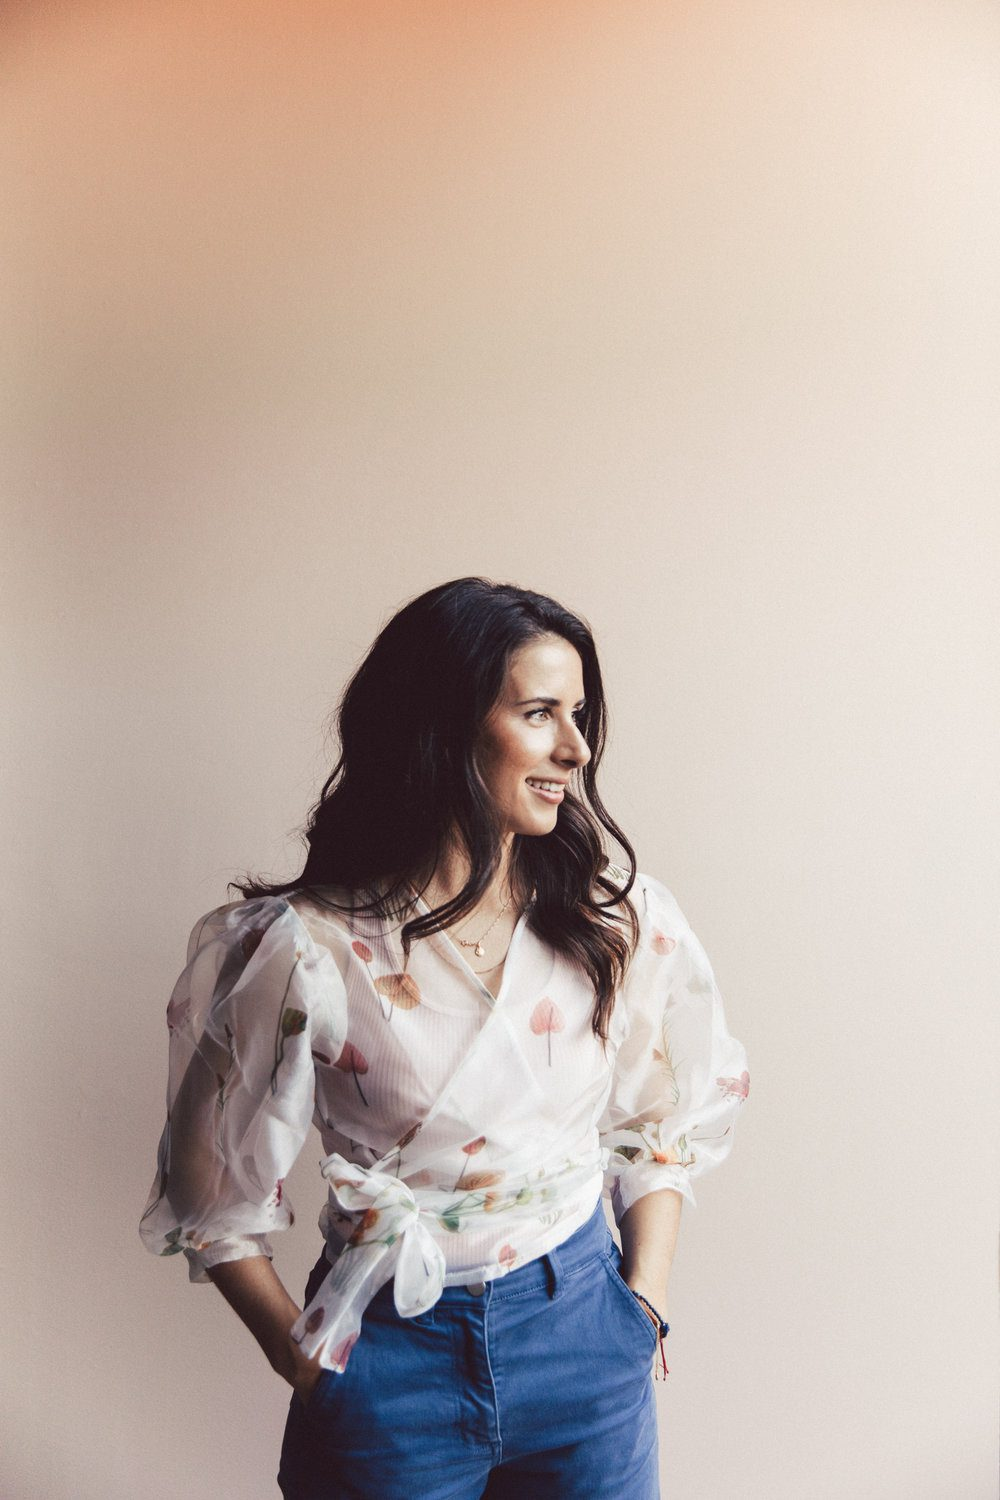 Michelle Pellizzon, the Founder & CEO of Holisticism